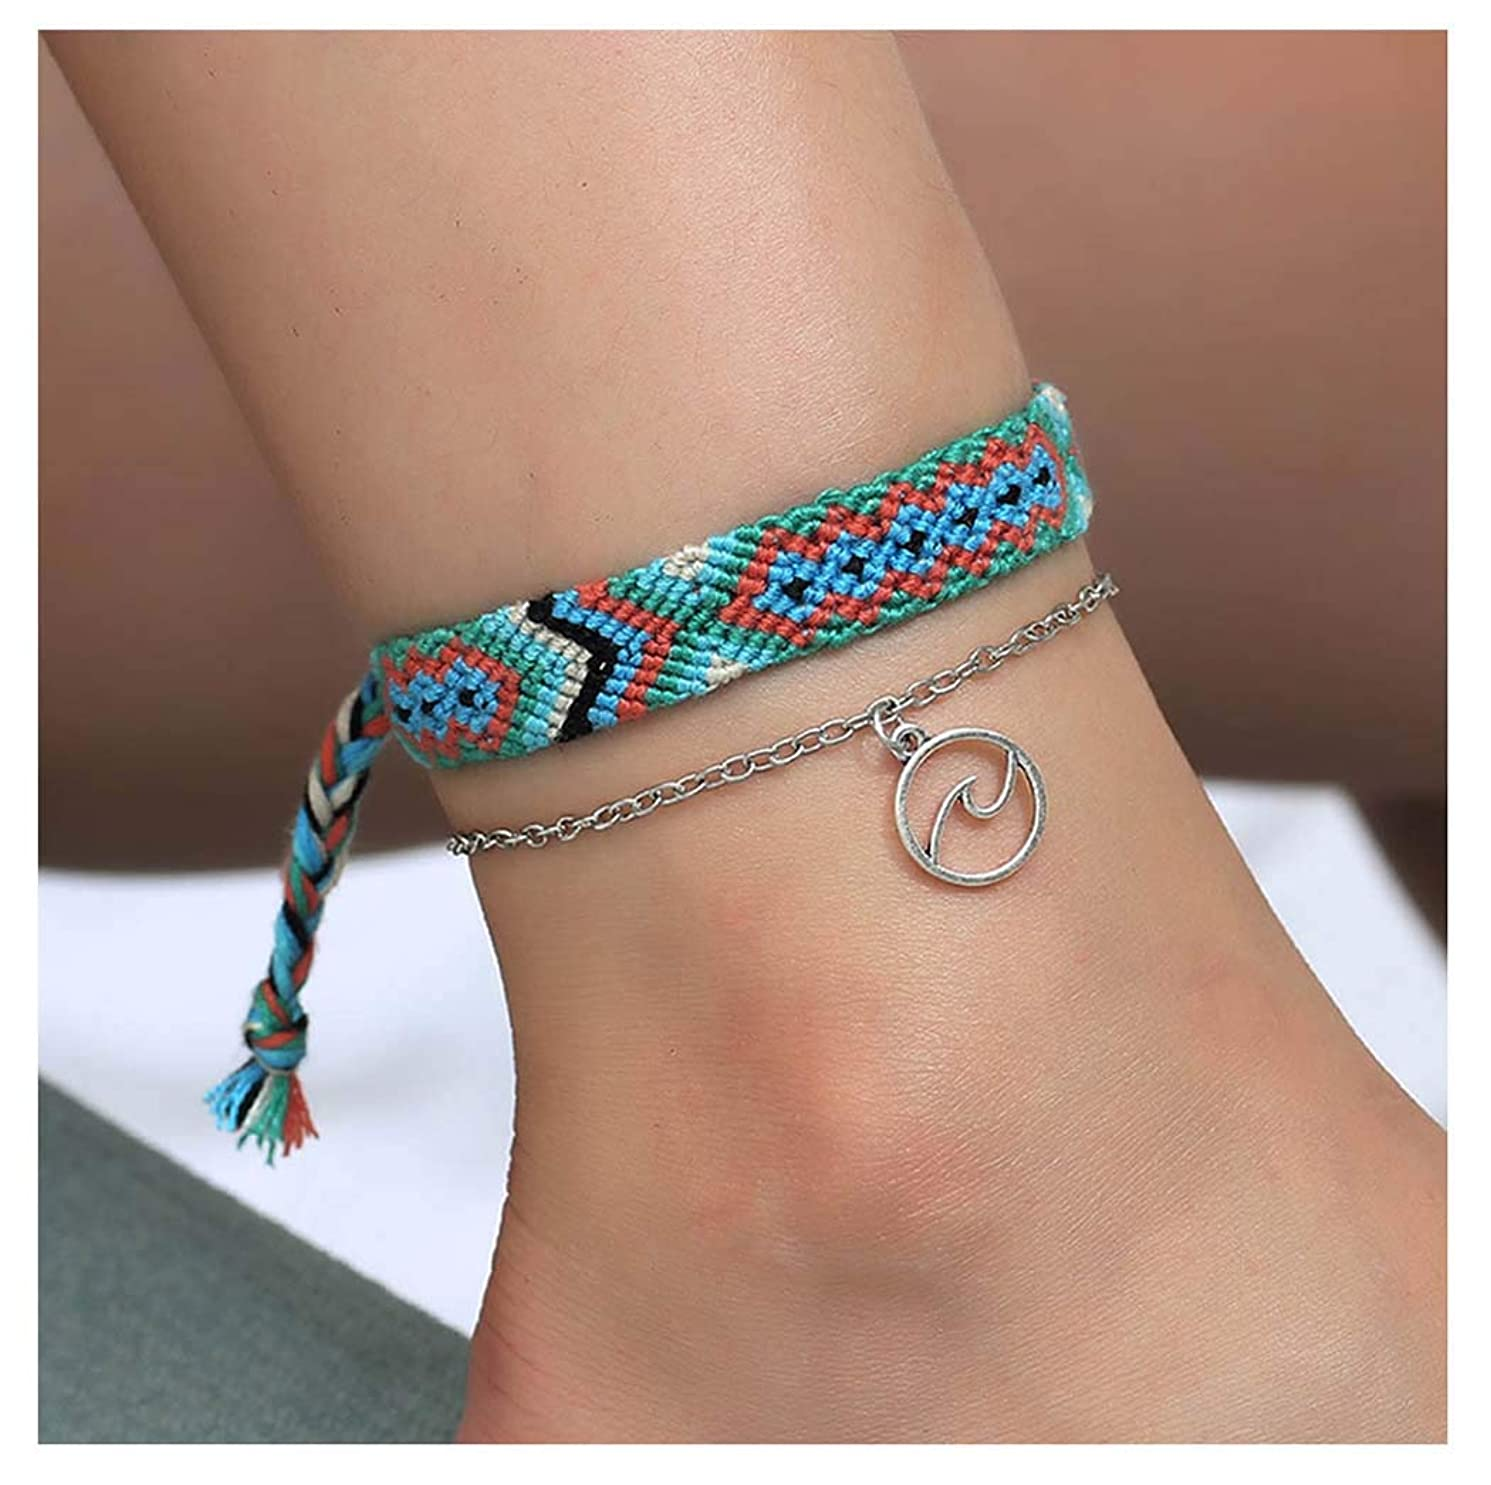 CanB Layered Rope Anklet Boho Beach Anklet Bracelet Multicolor Handmade Foot Chain Silver Jewelry for Women and Girls